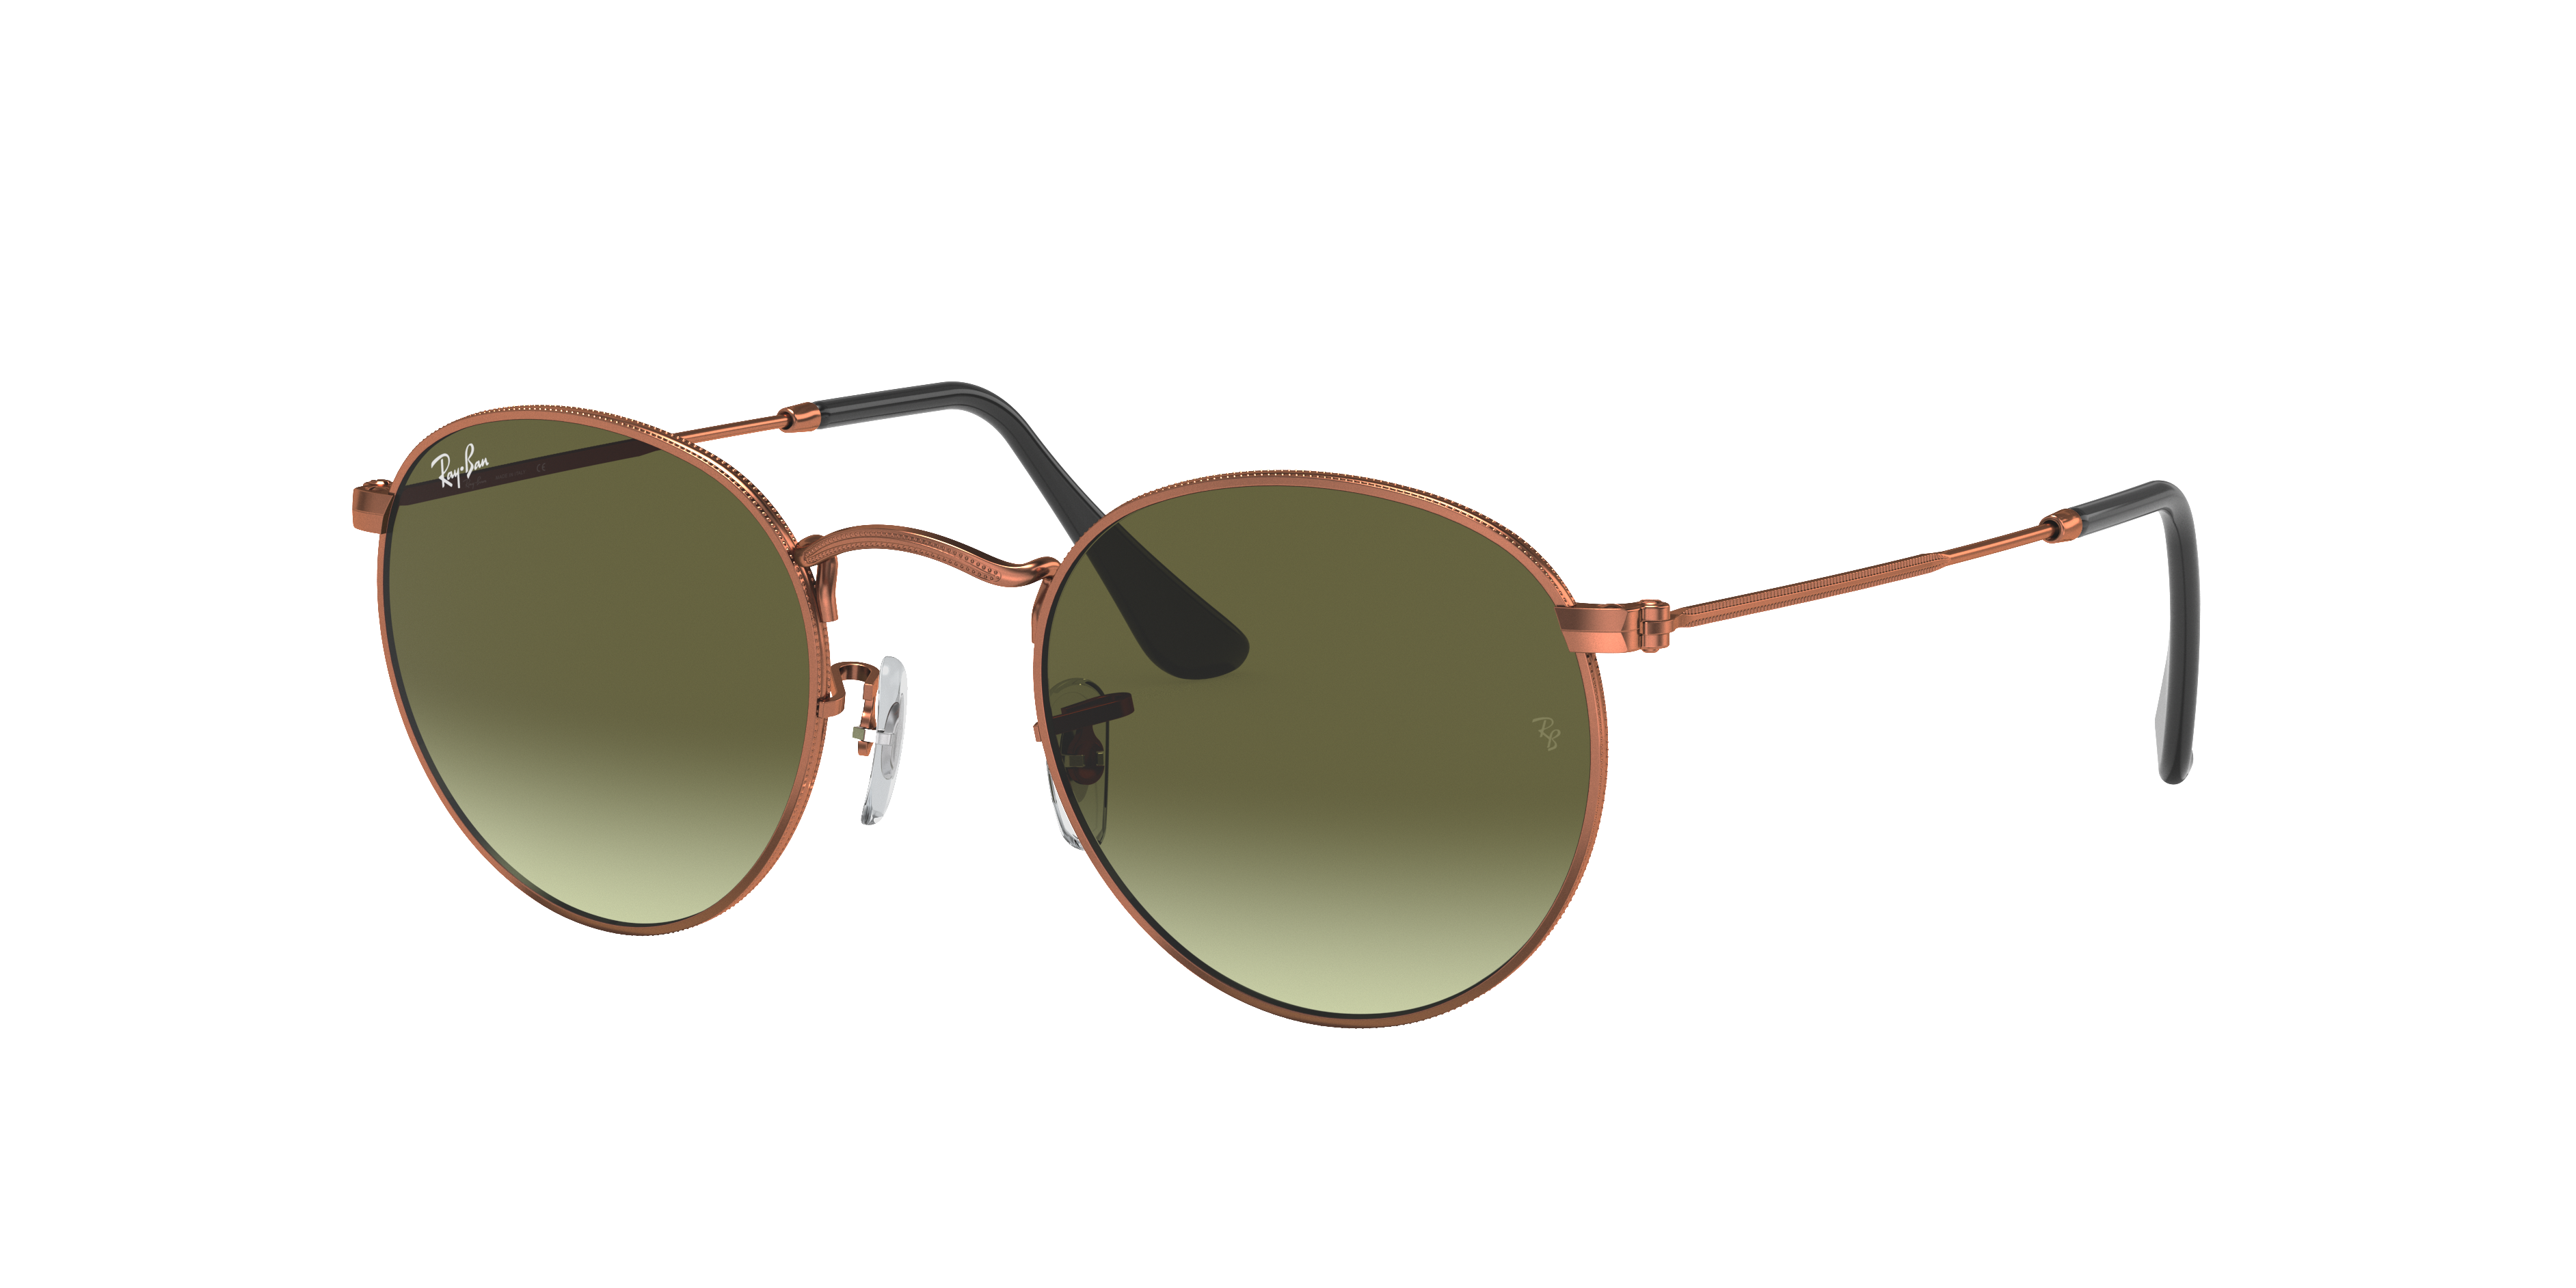 Ray-Ban Round Metal Bronze-Copper, Green Lenses - RB3447